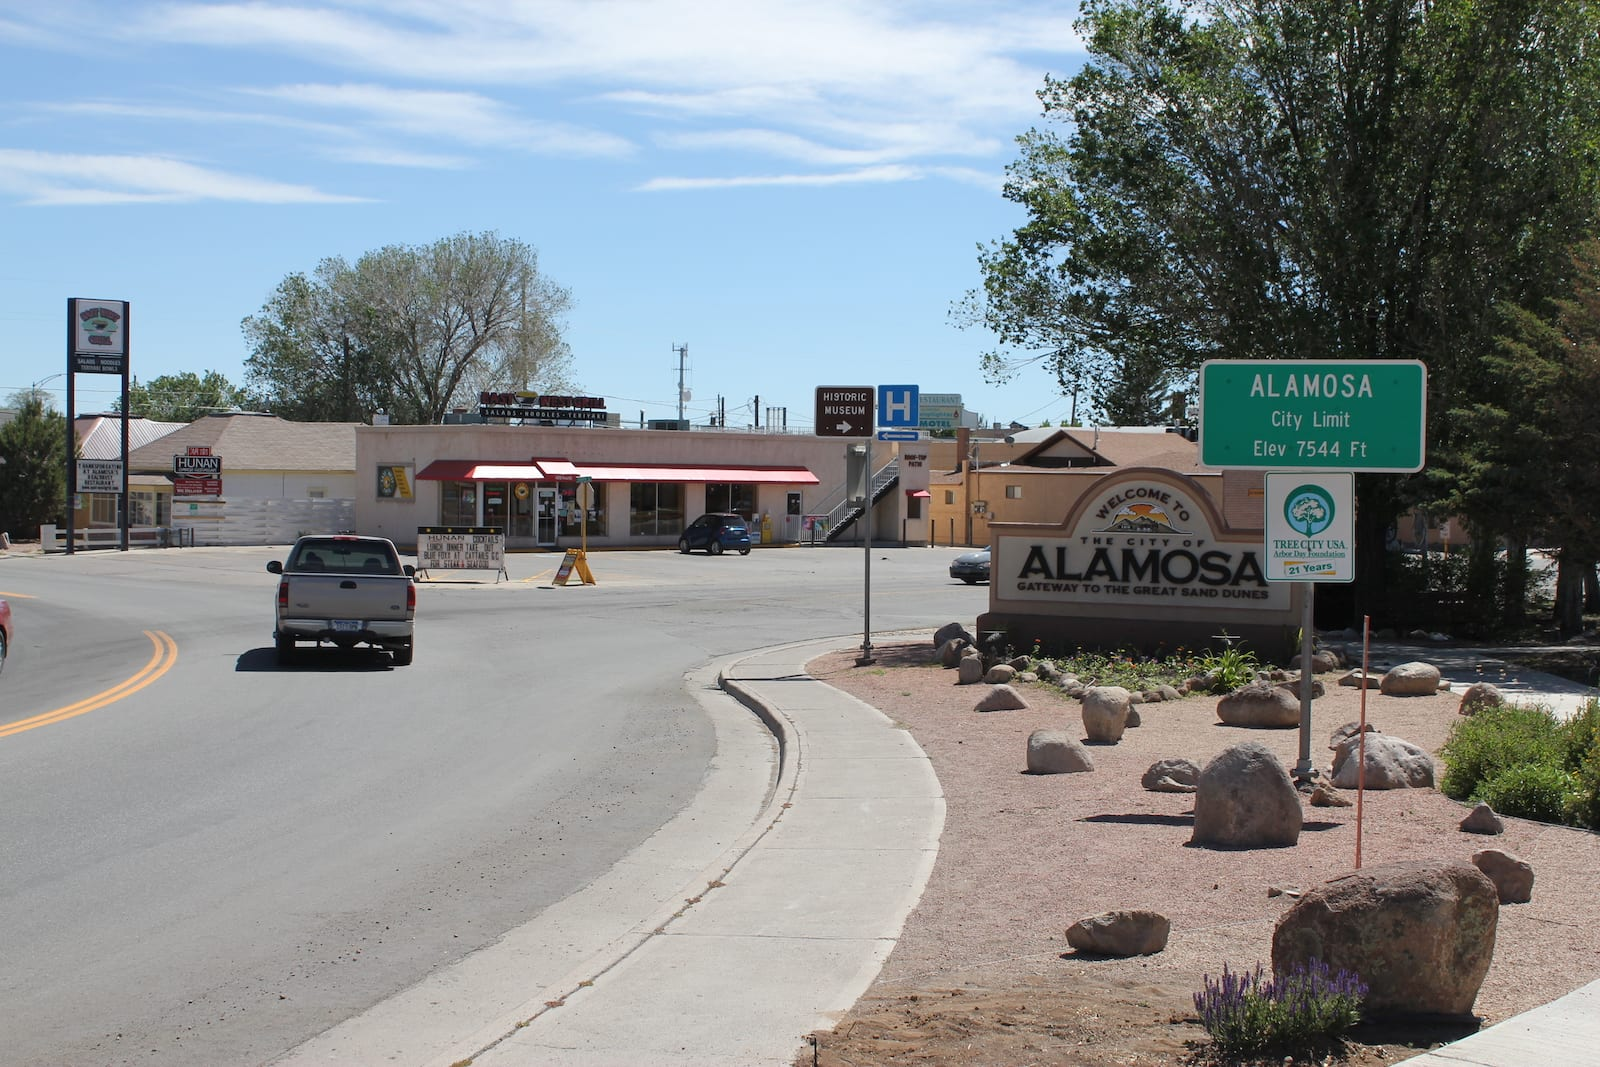 Colorado Strange Laws Alamosa City Limit